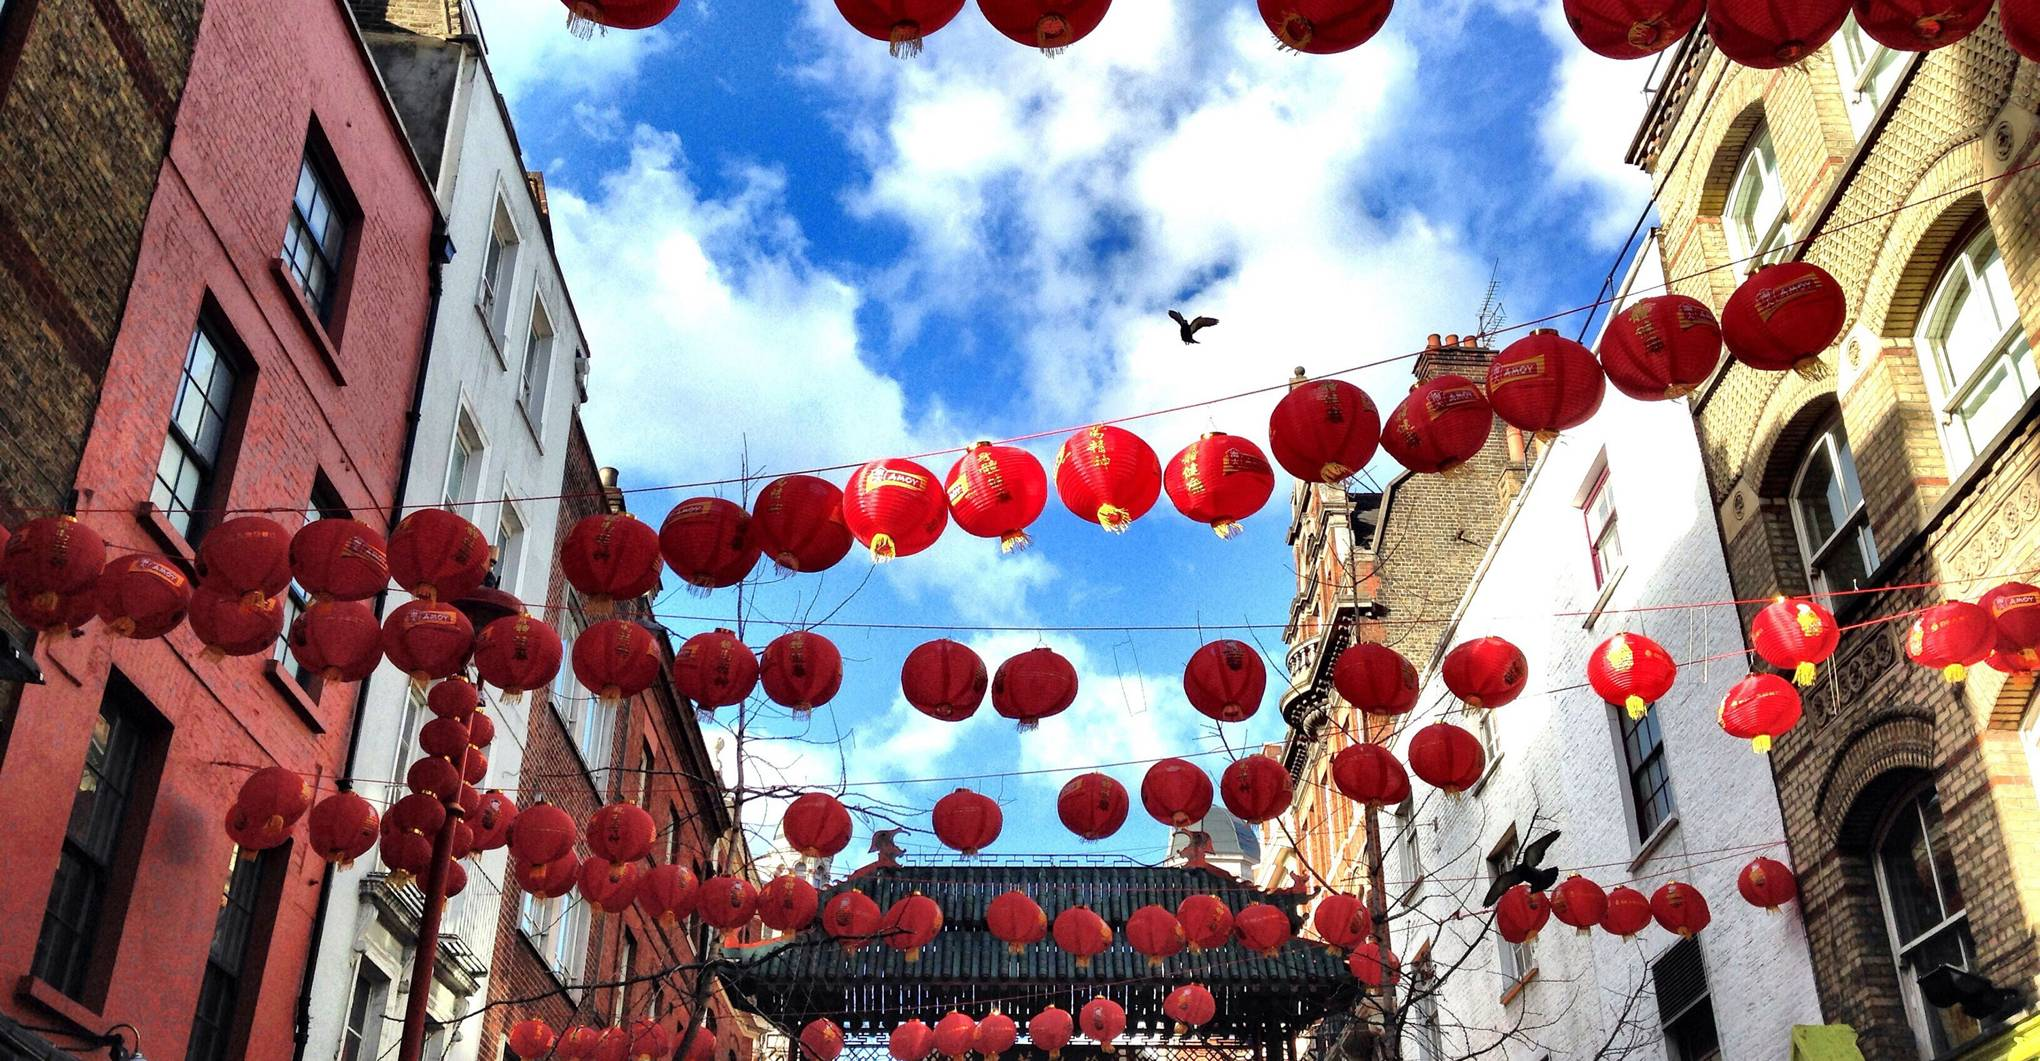 The best restaurants in Chinatown, London